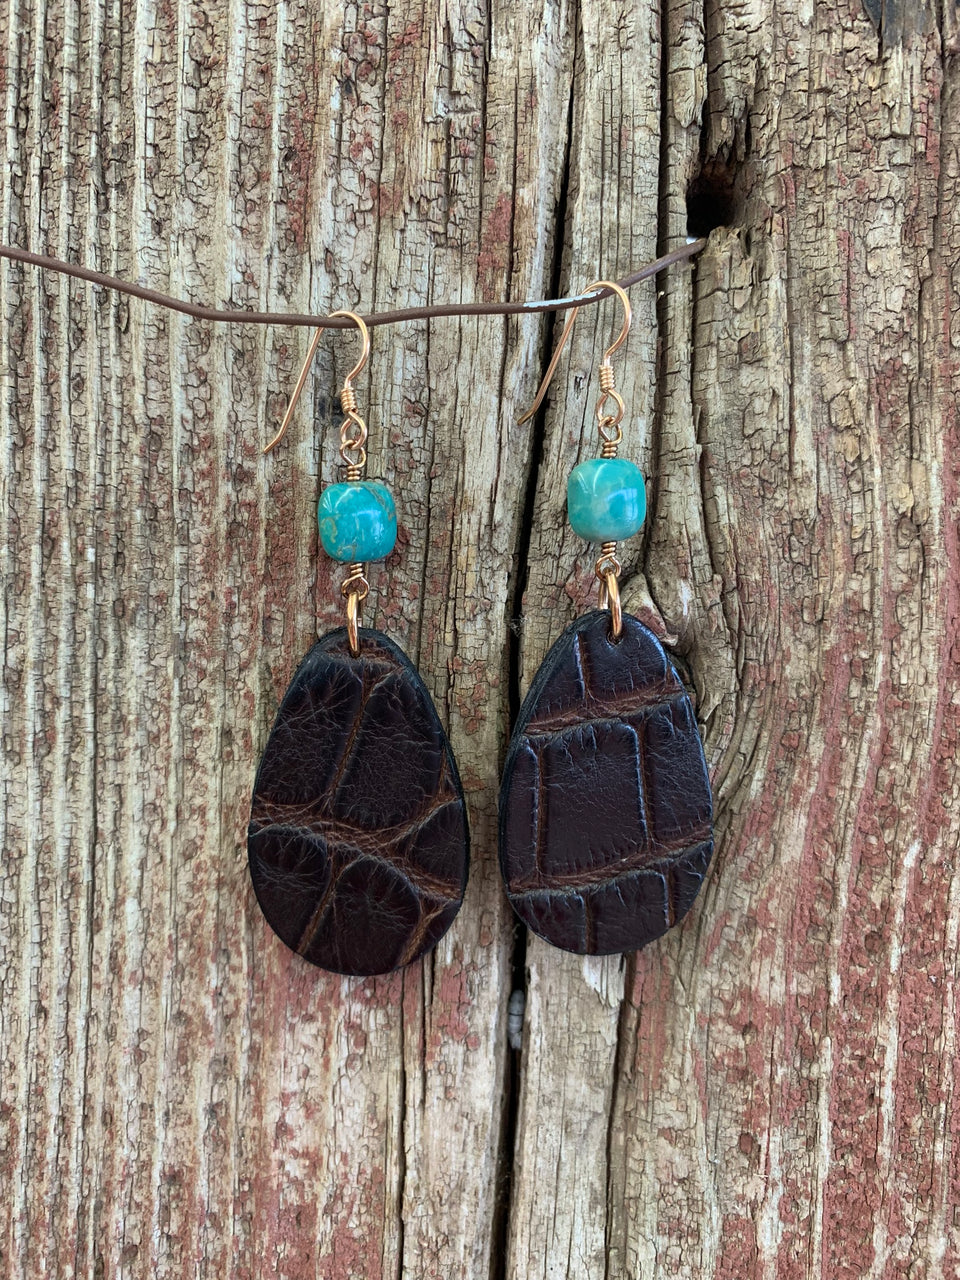 J.Forks Designs American Alligator Teardrops and Turquoise Earrings with Solid Bronze French Wires.